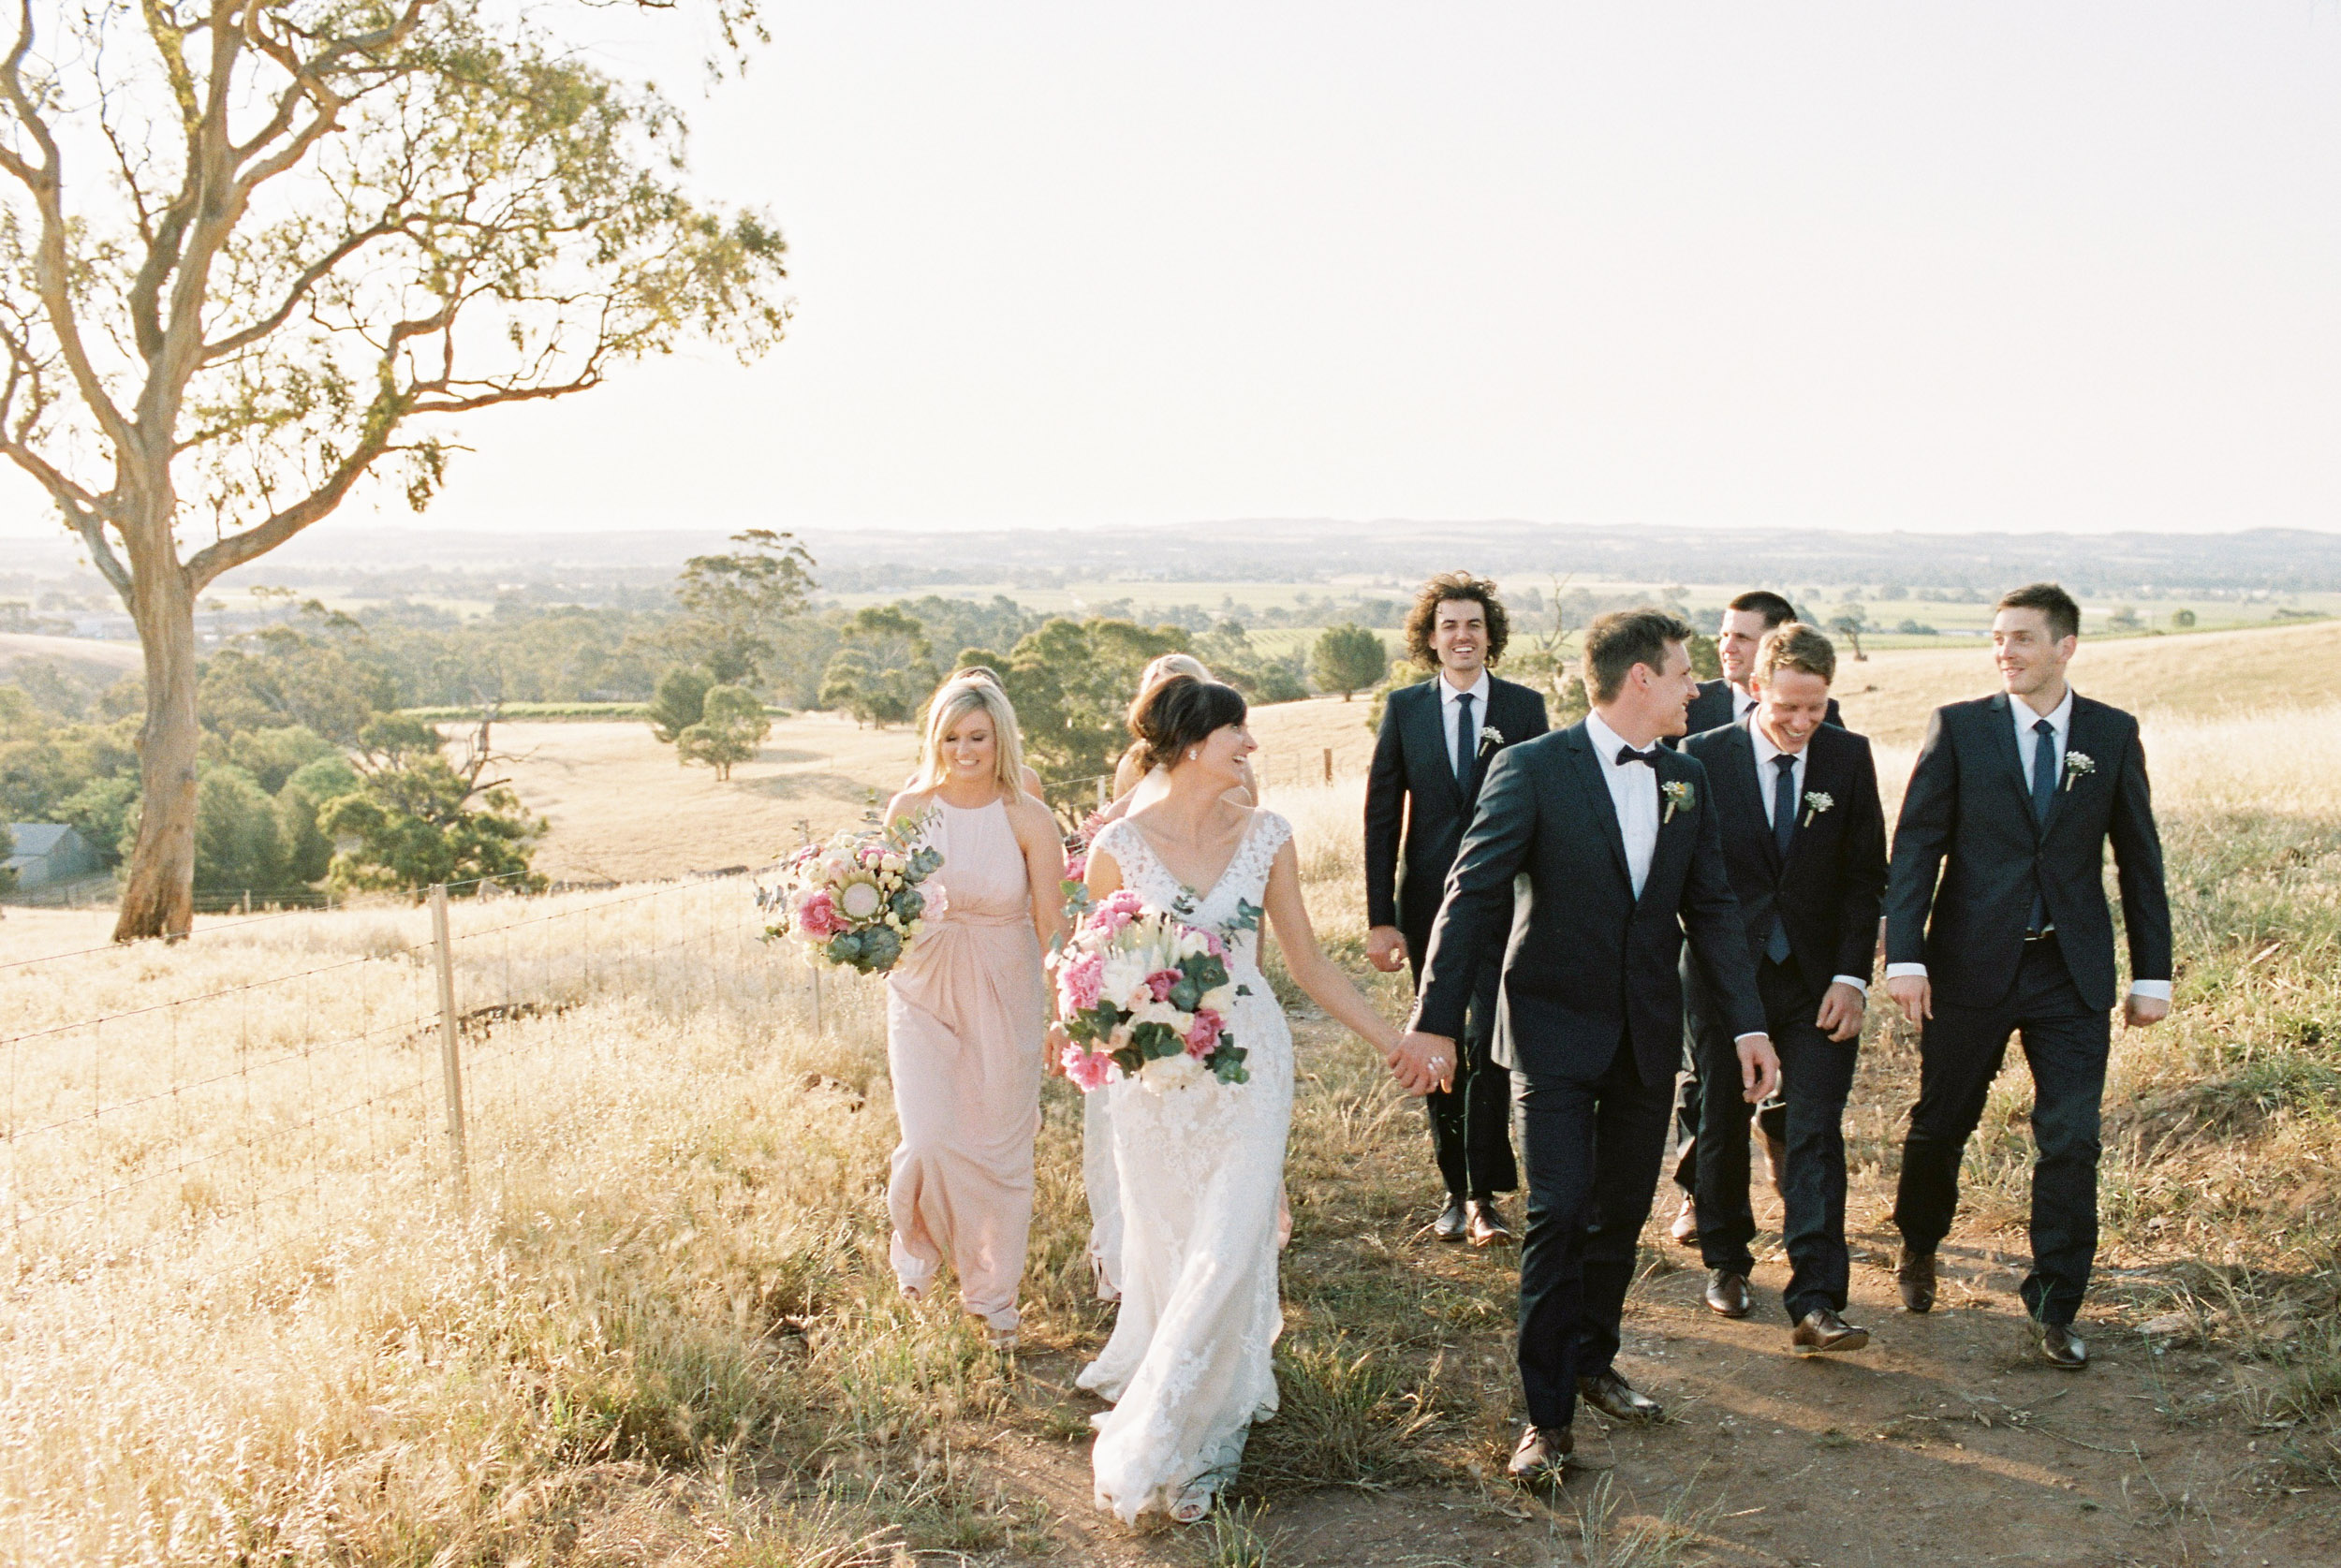 Union_Chapel_Barossa_Valley_Wedding-080.jpg